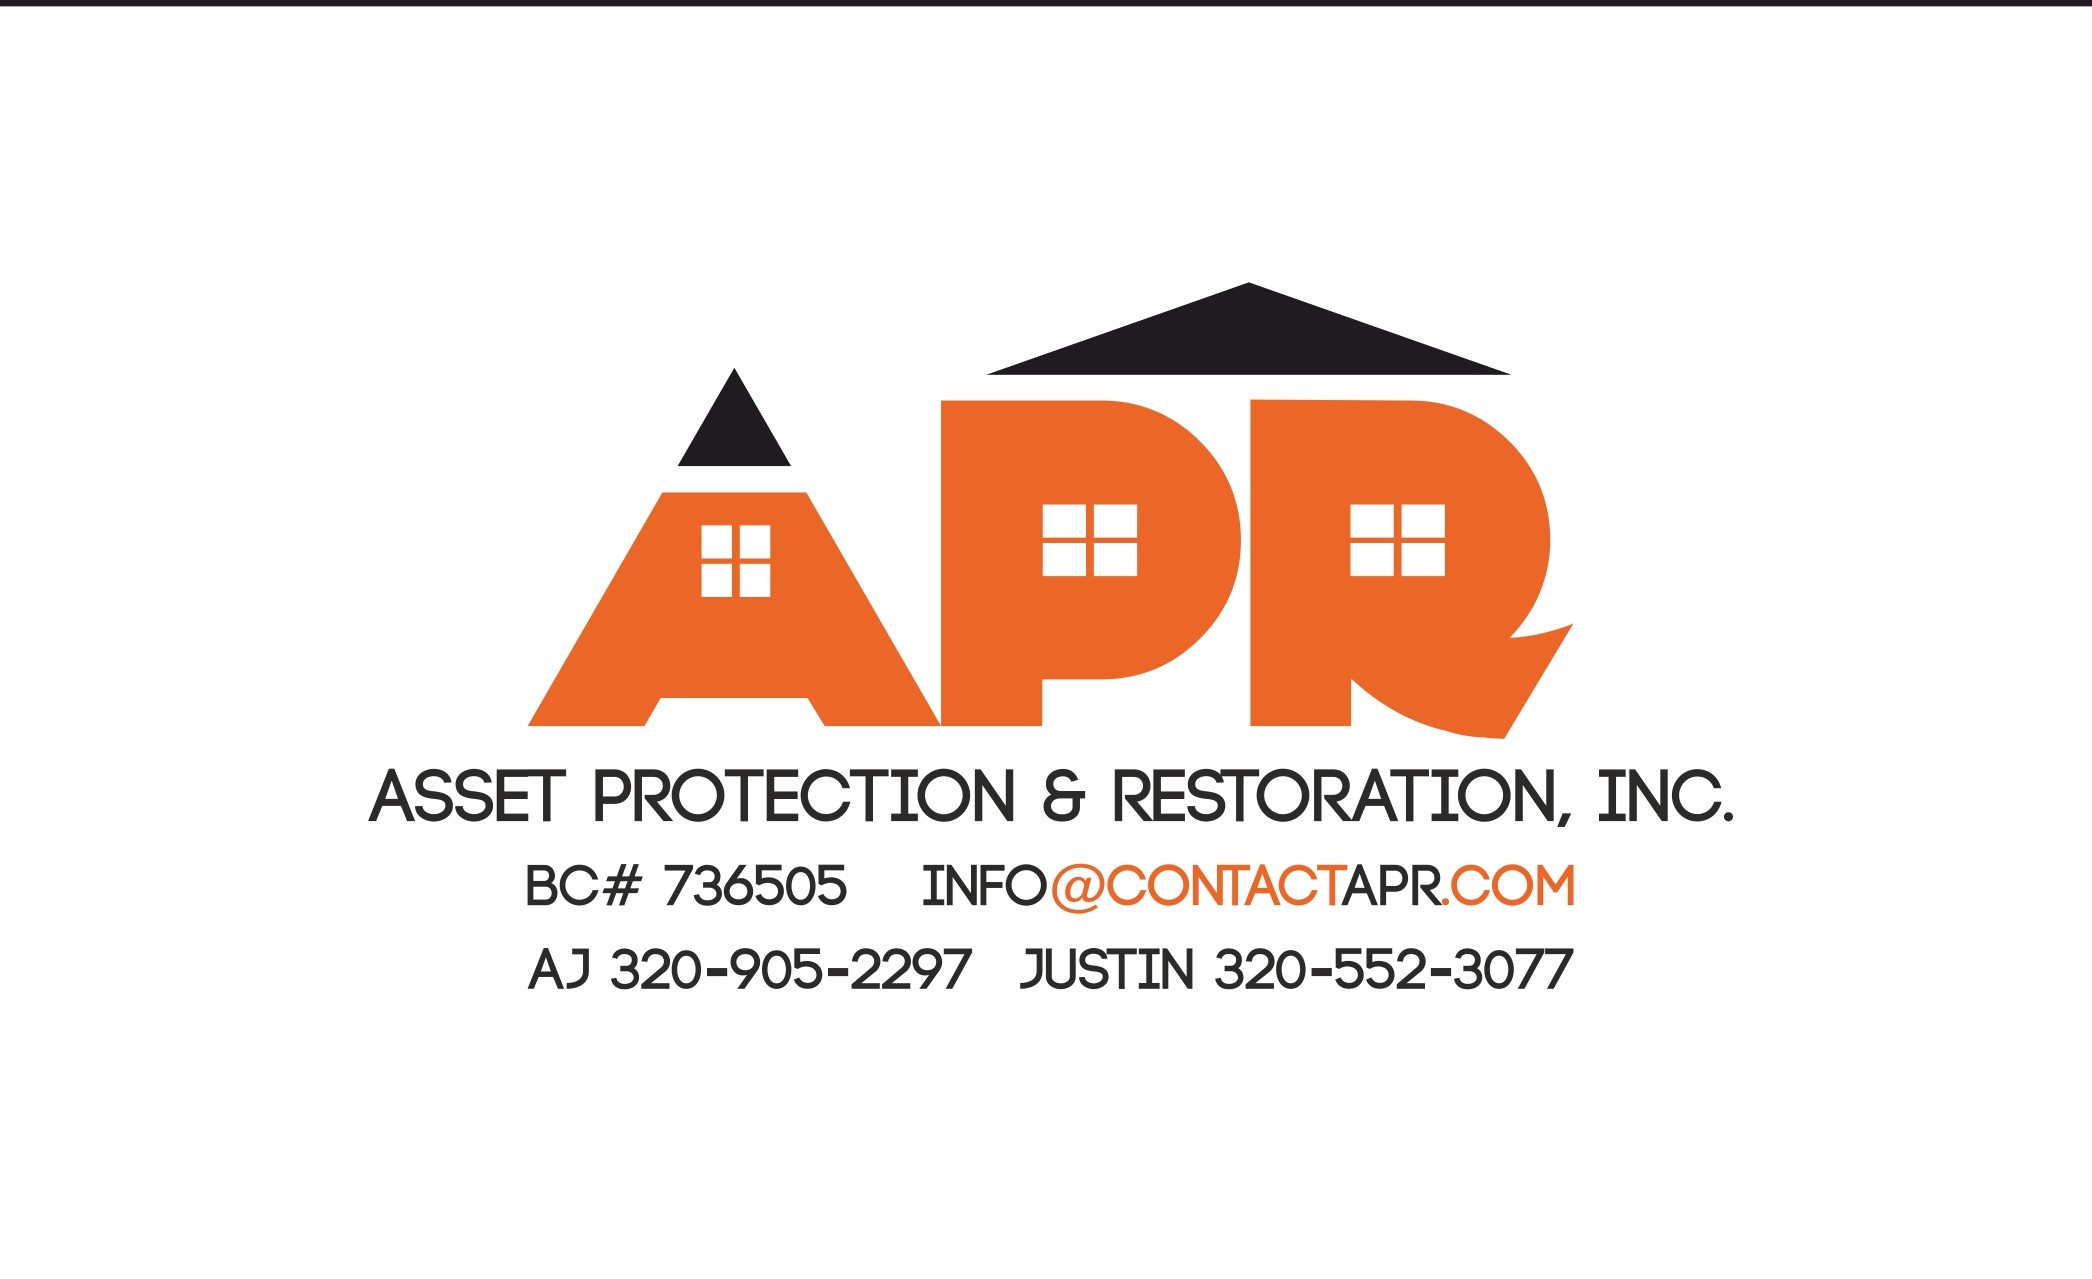 Asset Protection & Restoration